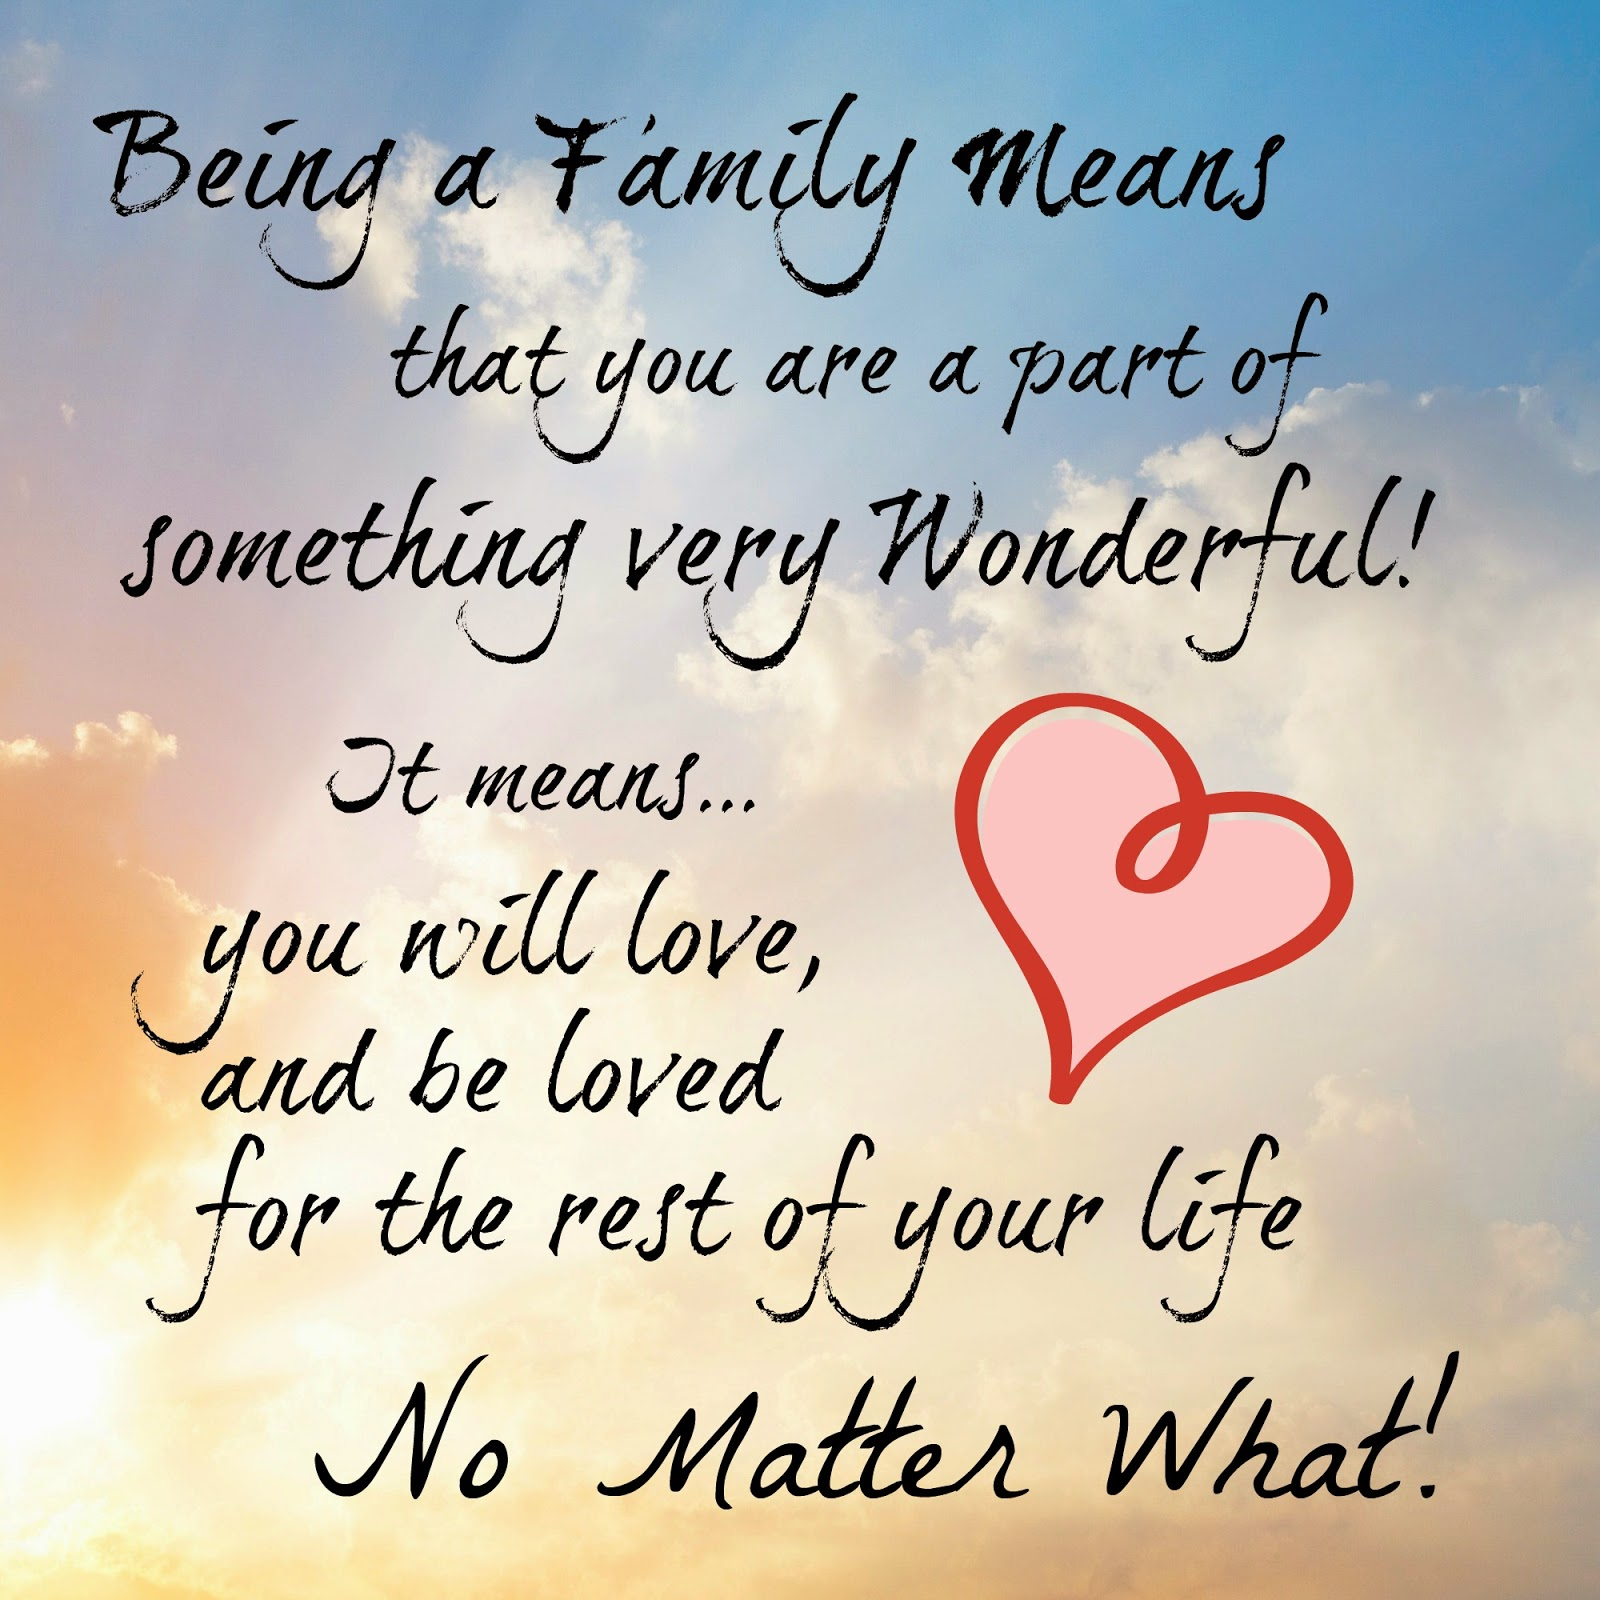 Love For Your Family Quotes: Being Away From Family Quotes. QuotesGram